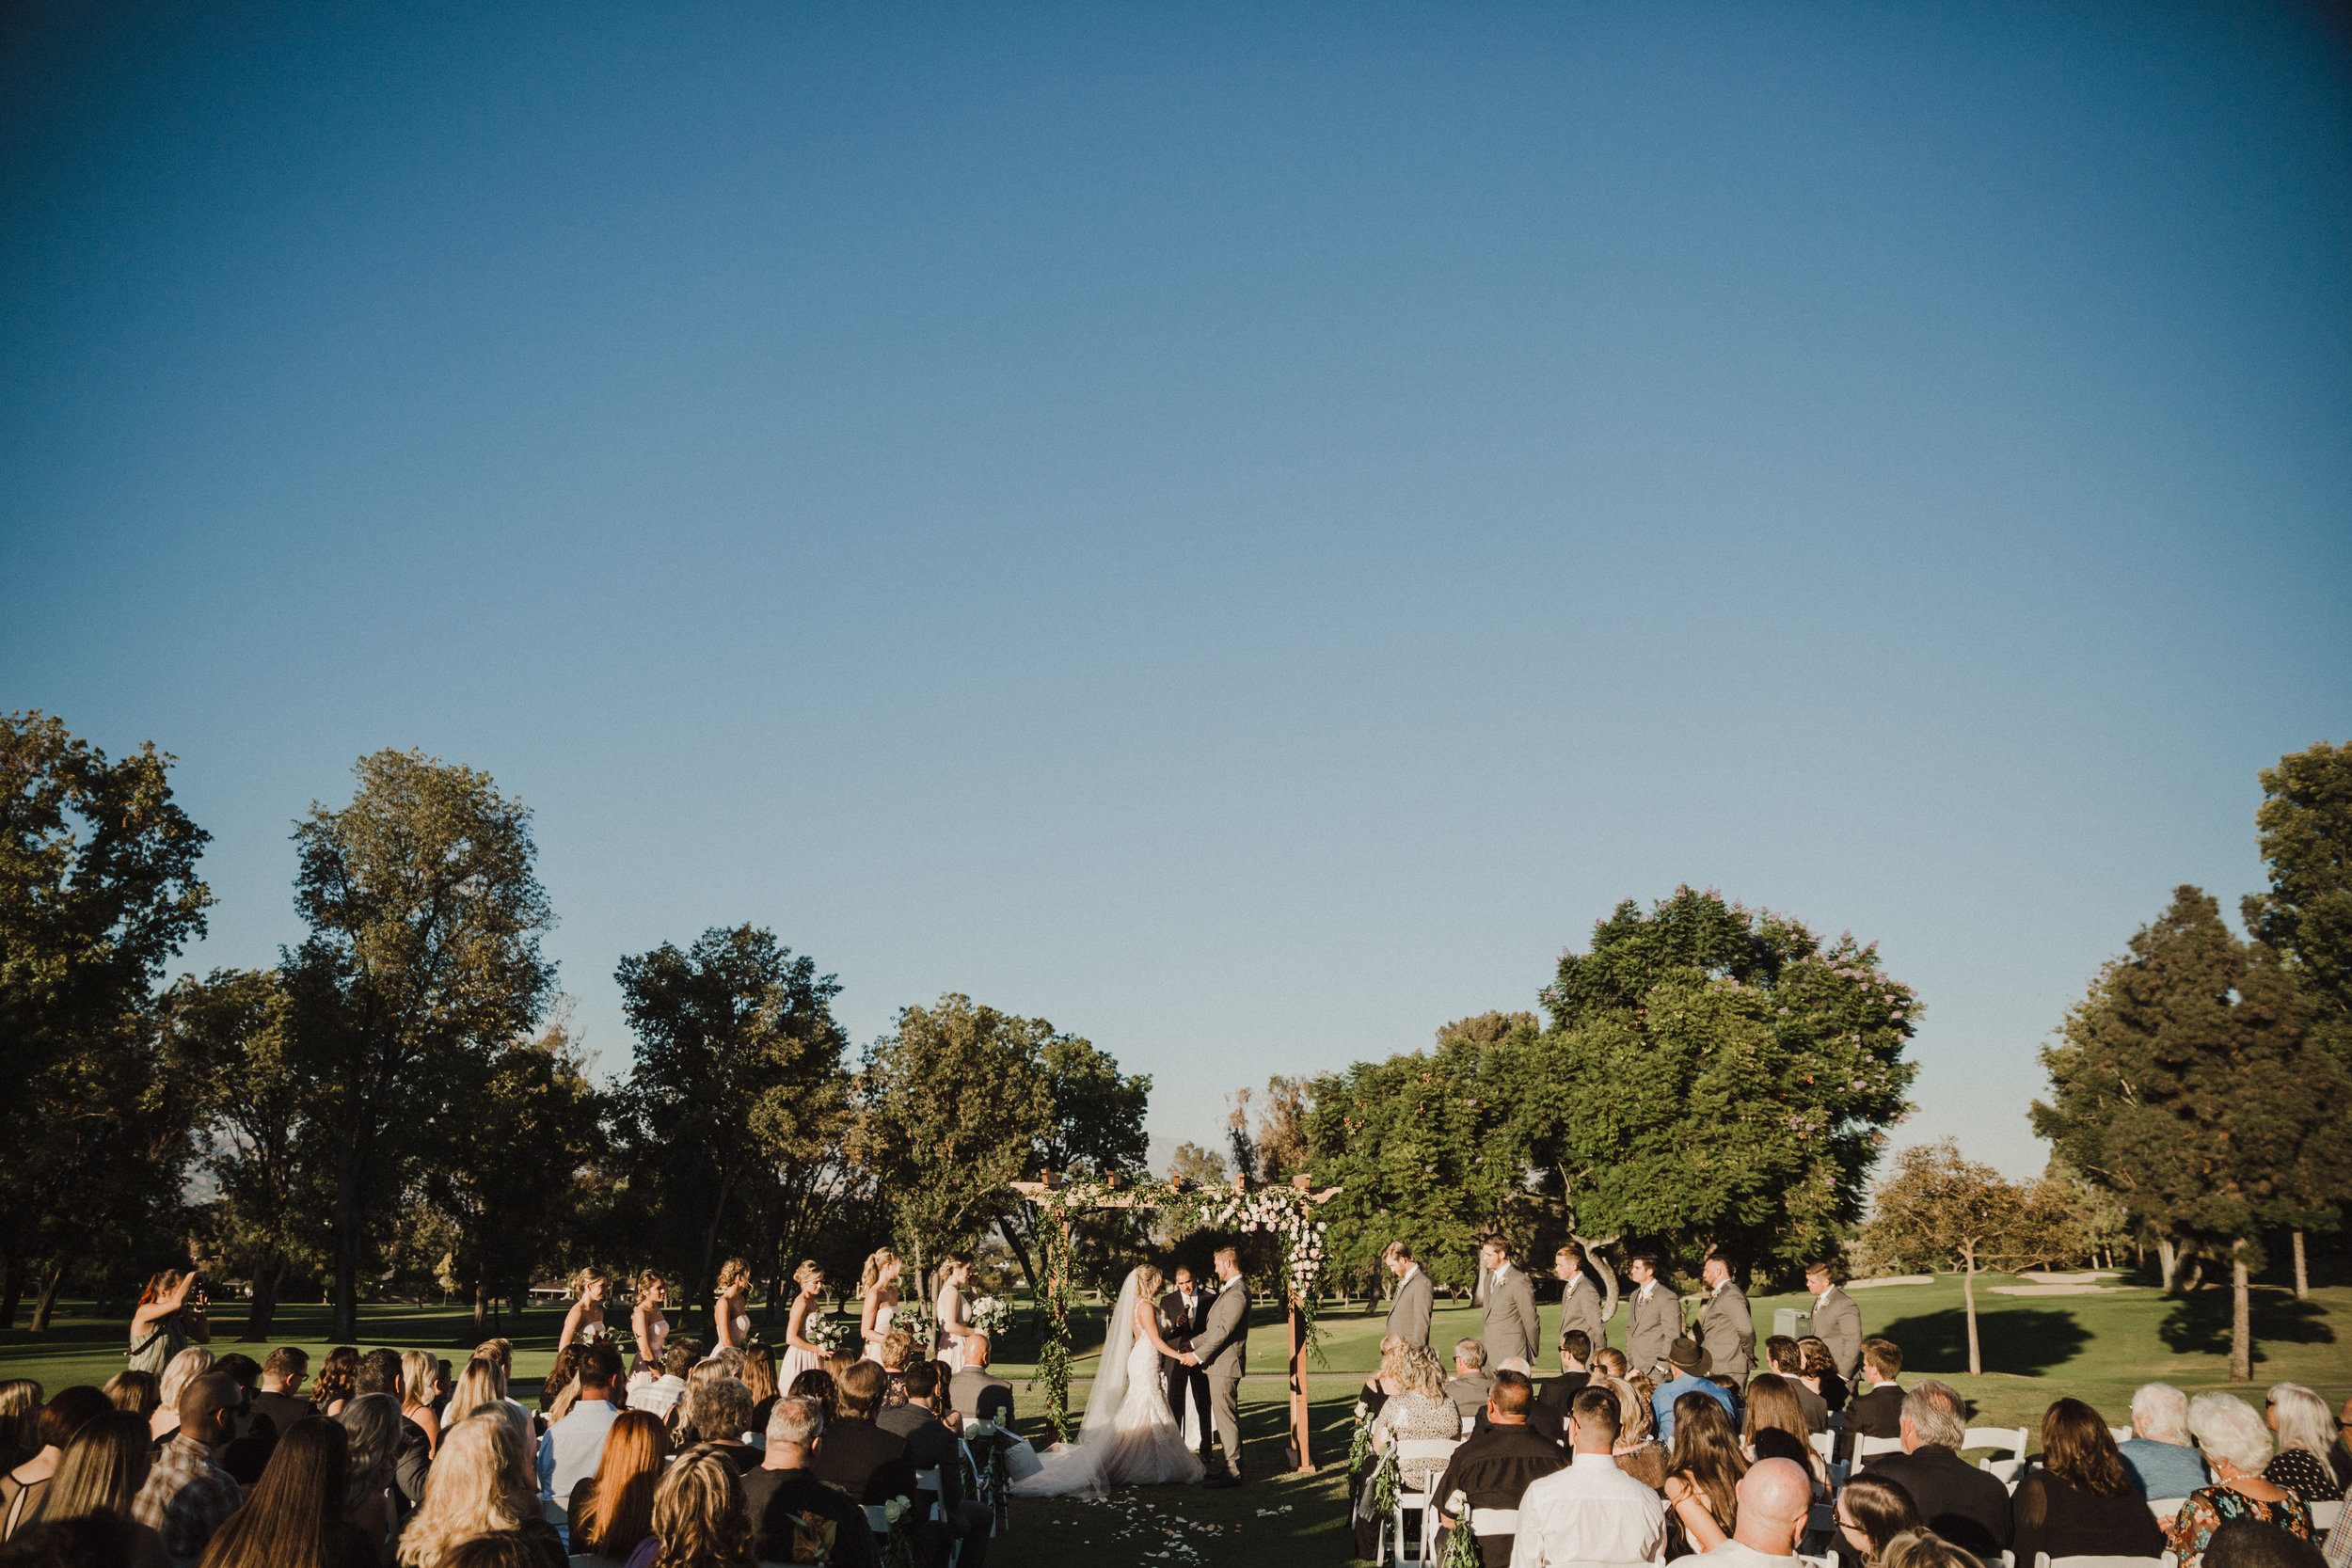 DianaLakePhoto-A+C-Wedding-Ceremony_147.jpg